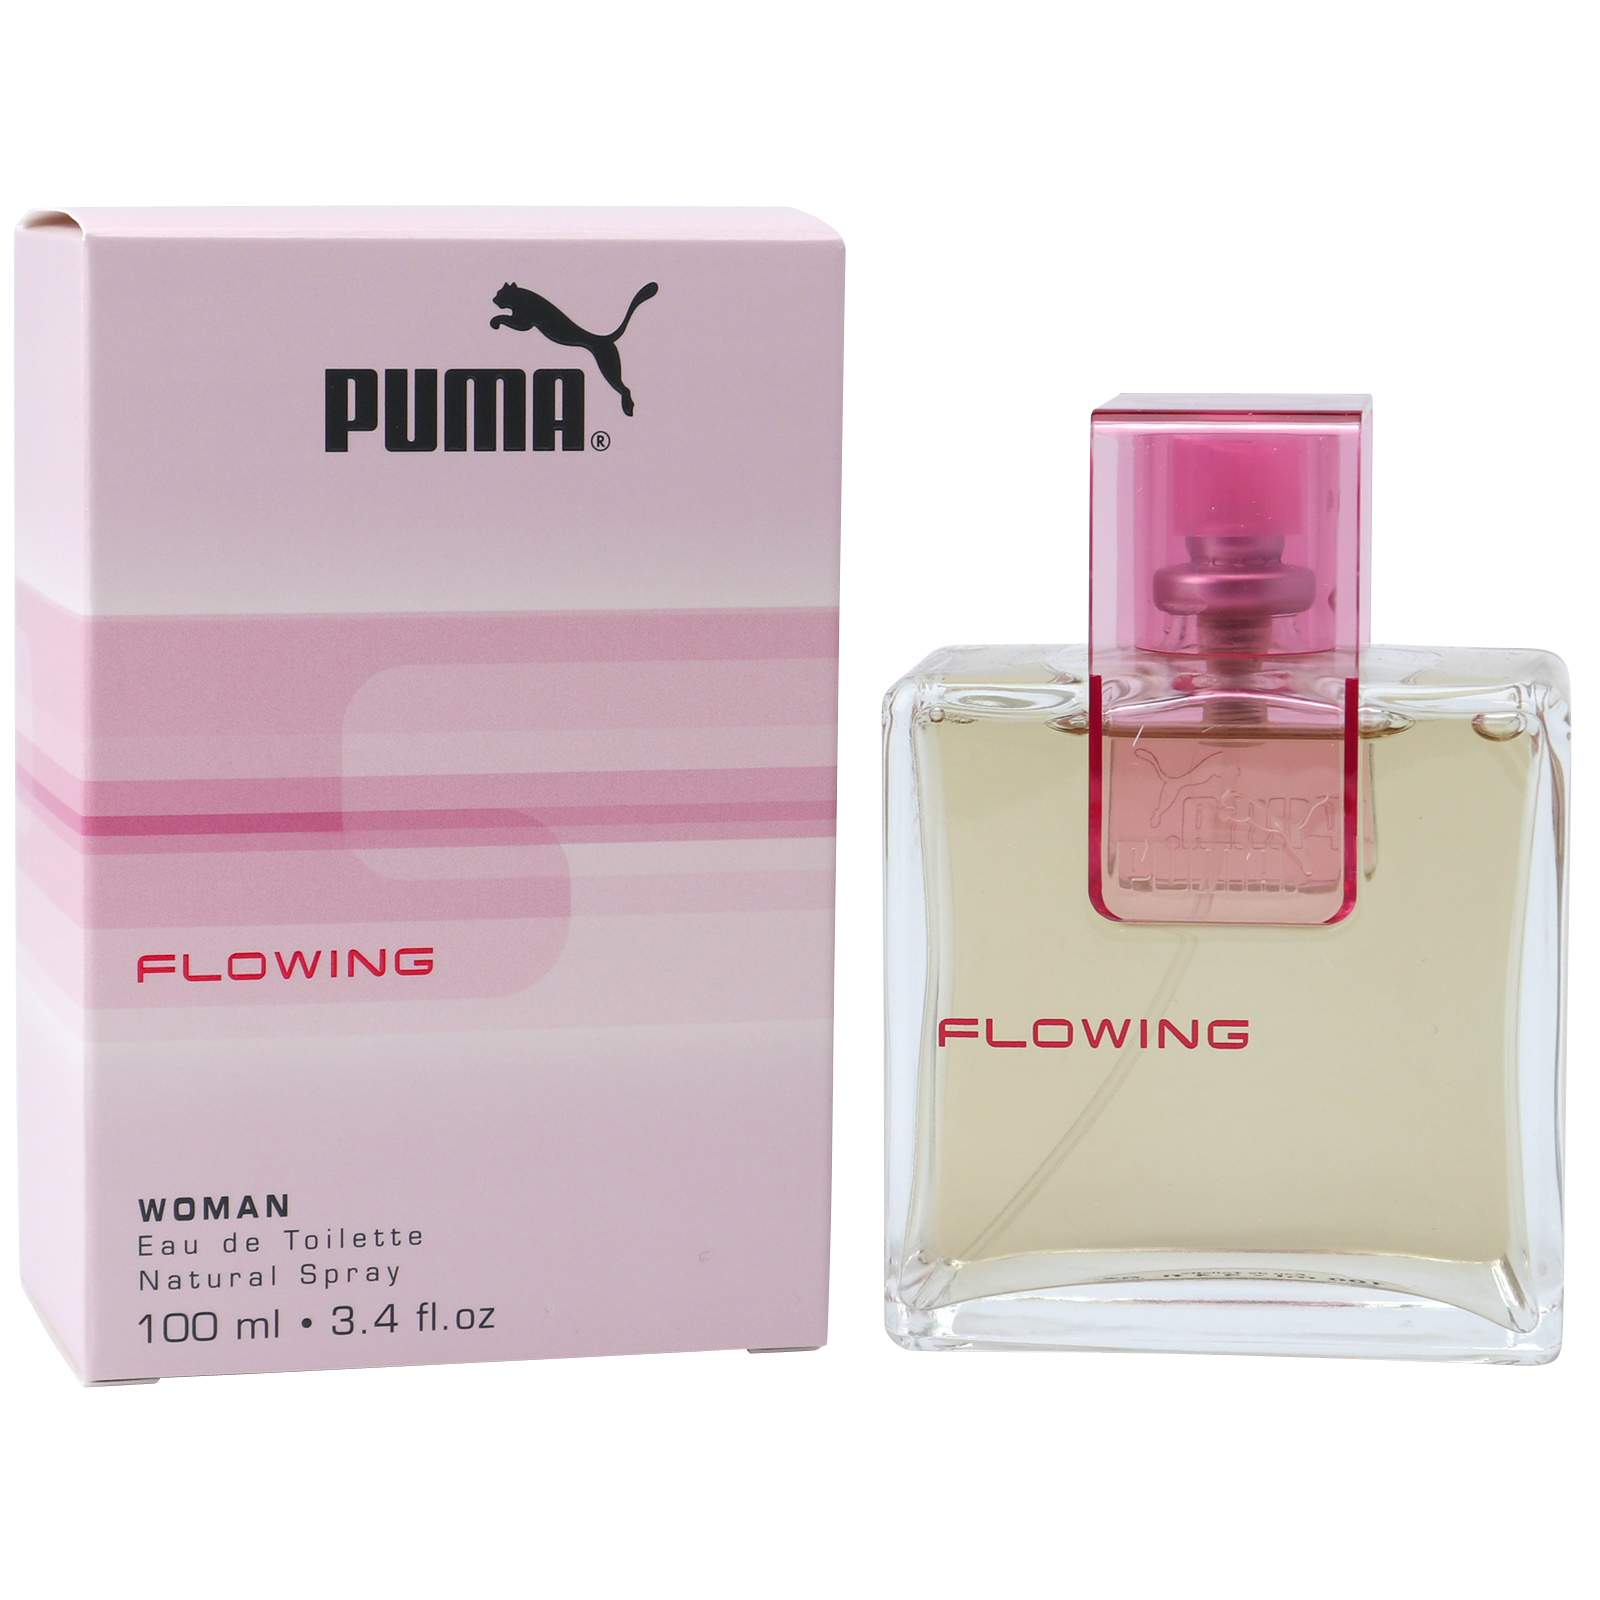 Puma Flowing Woman Eau de Toilette 2 x 20ml EDT